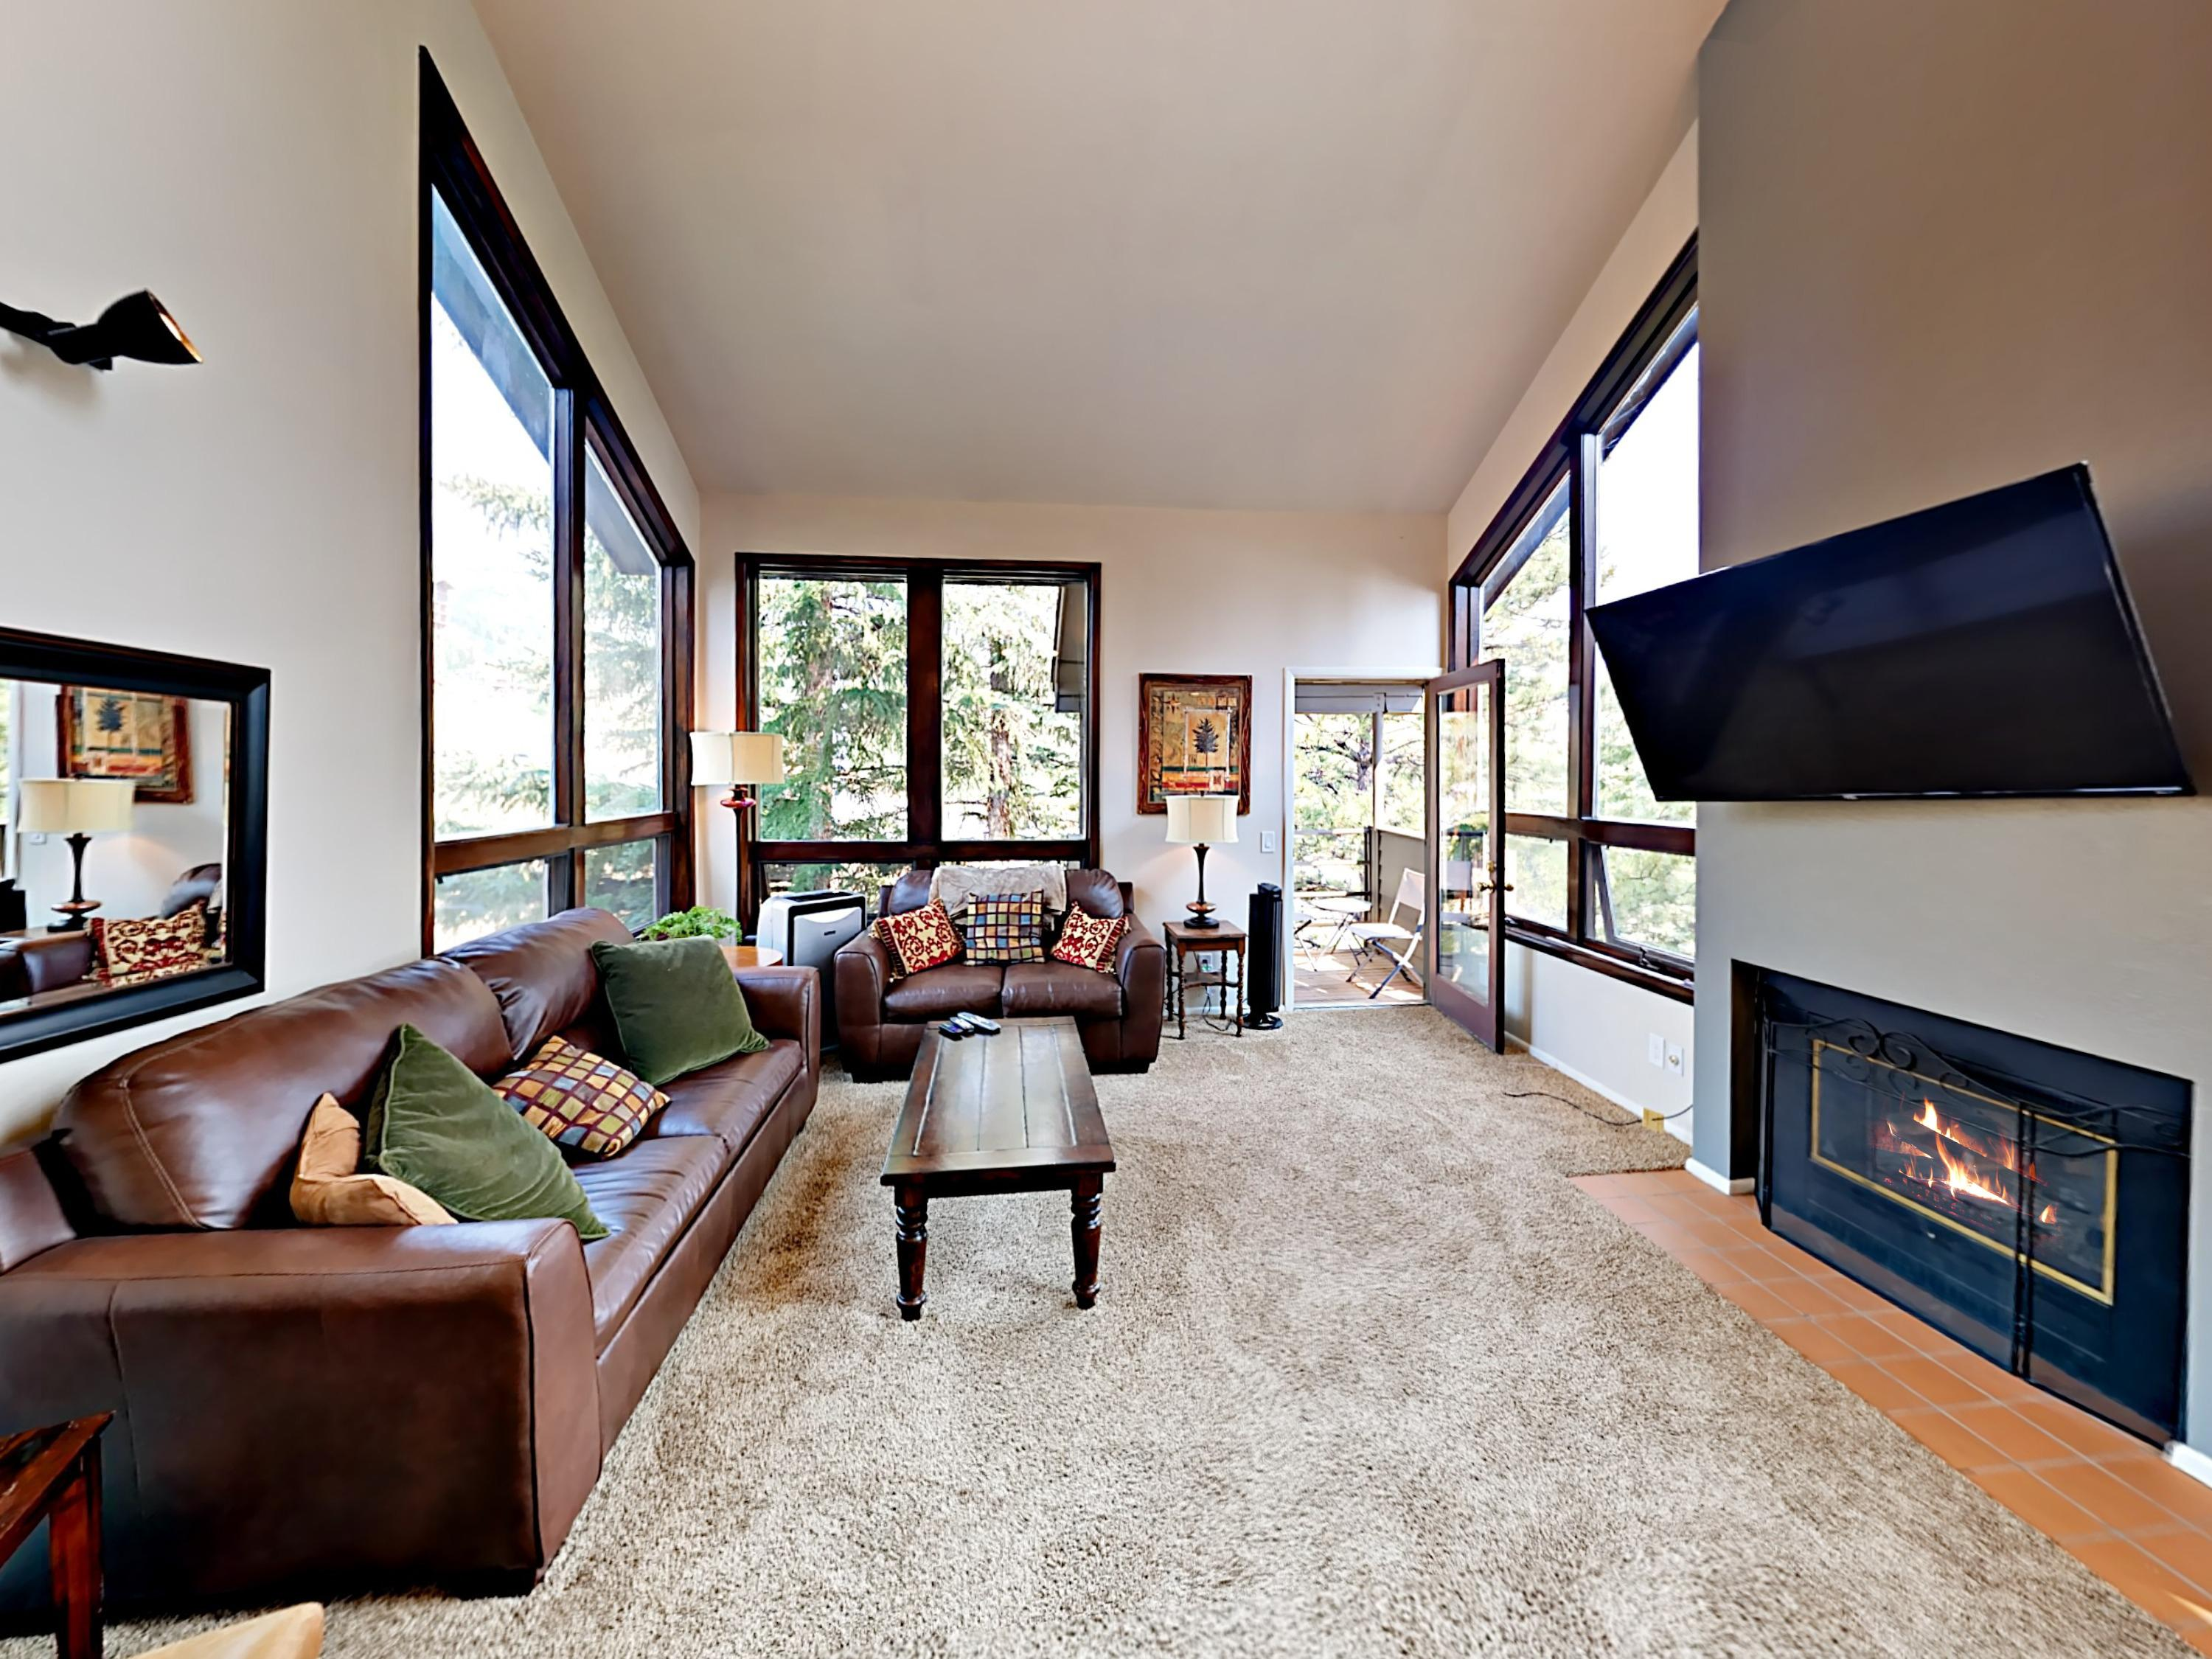 Welcome to Park City! Your townhouse is professionally managed and maintained by TurnKey Vacation Rentals.